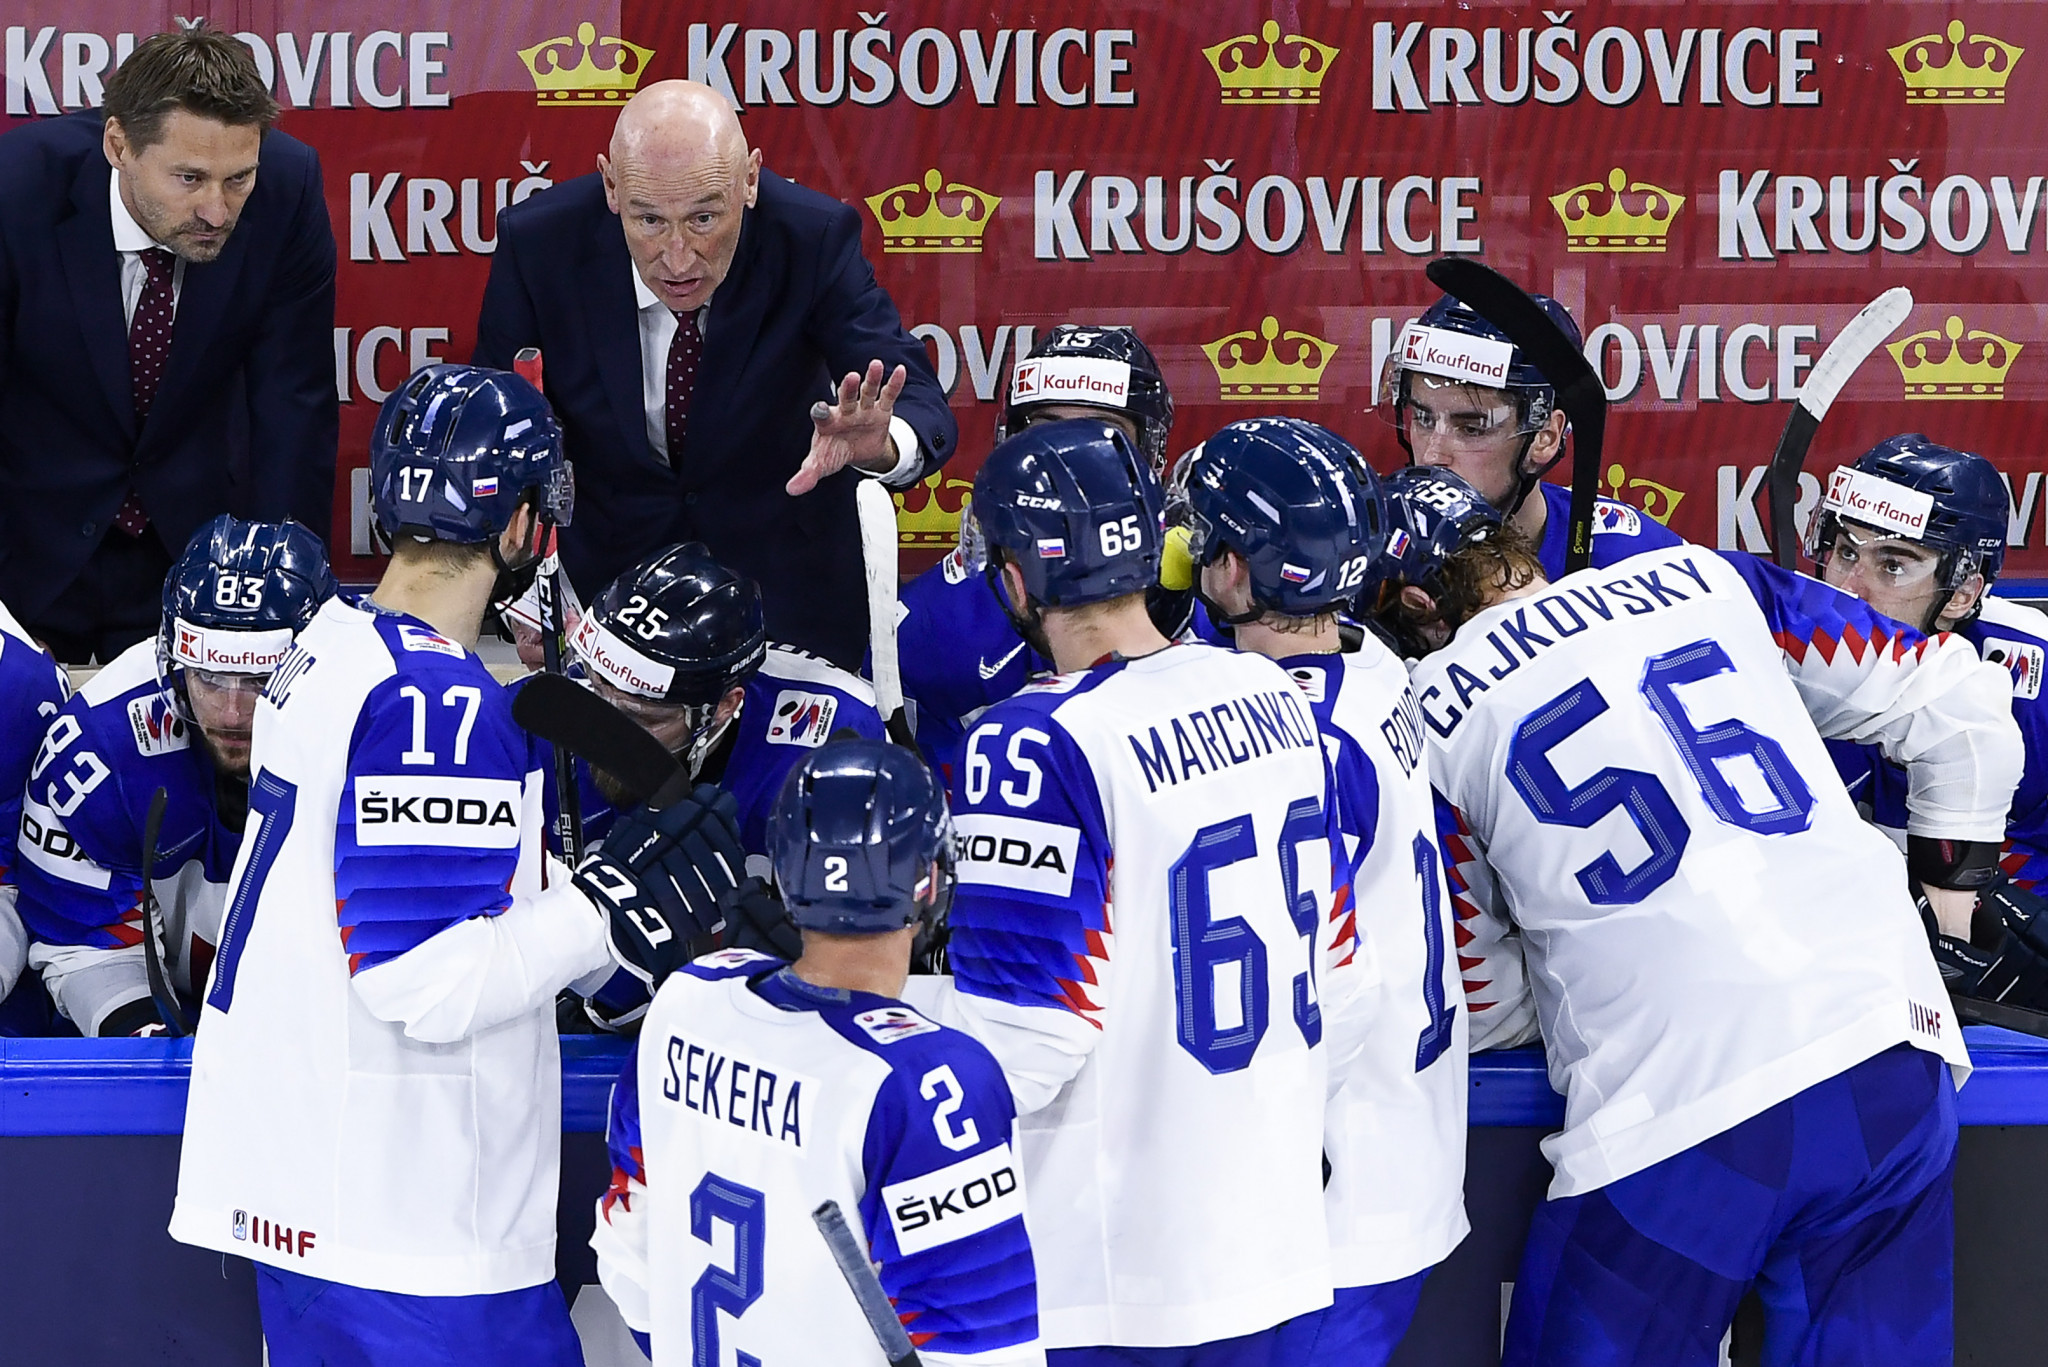 Ramsay signs one-year contract to remain Slovakia men's ice hockey head coach